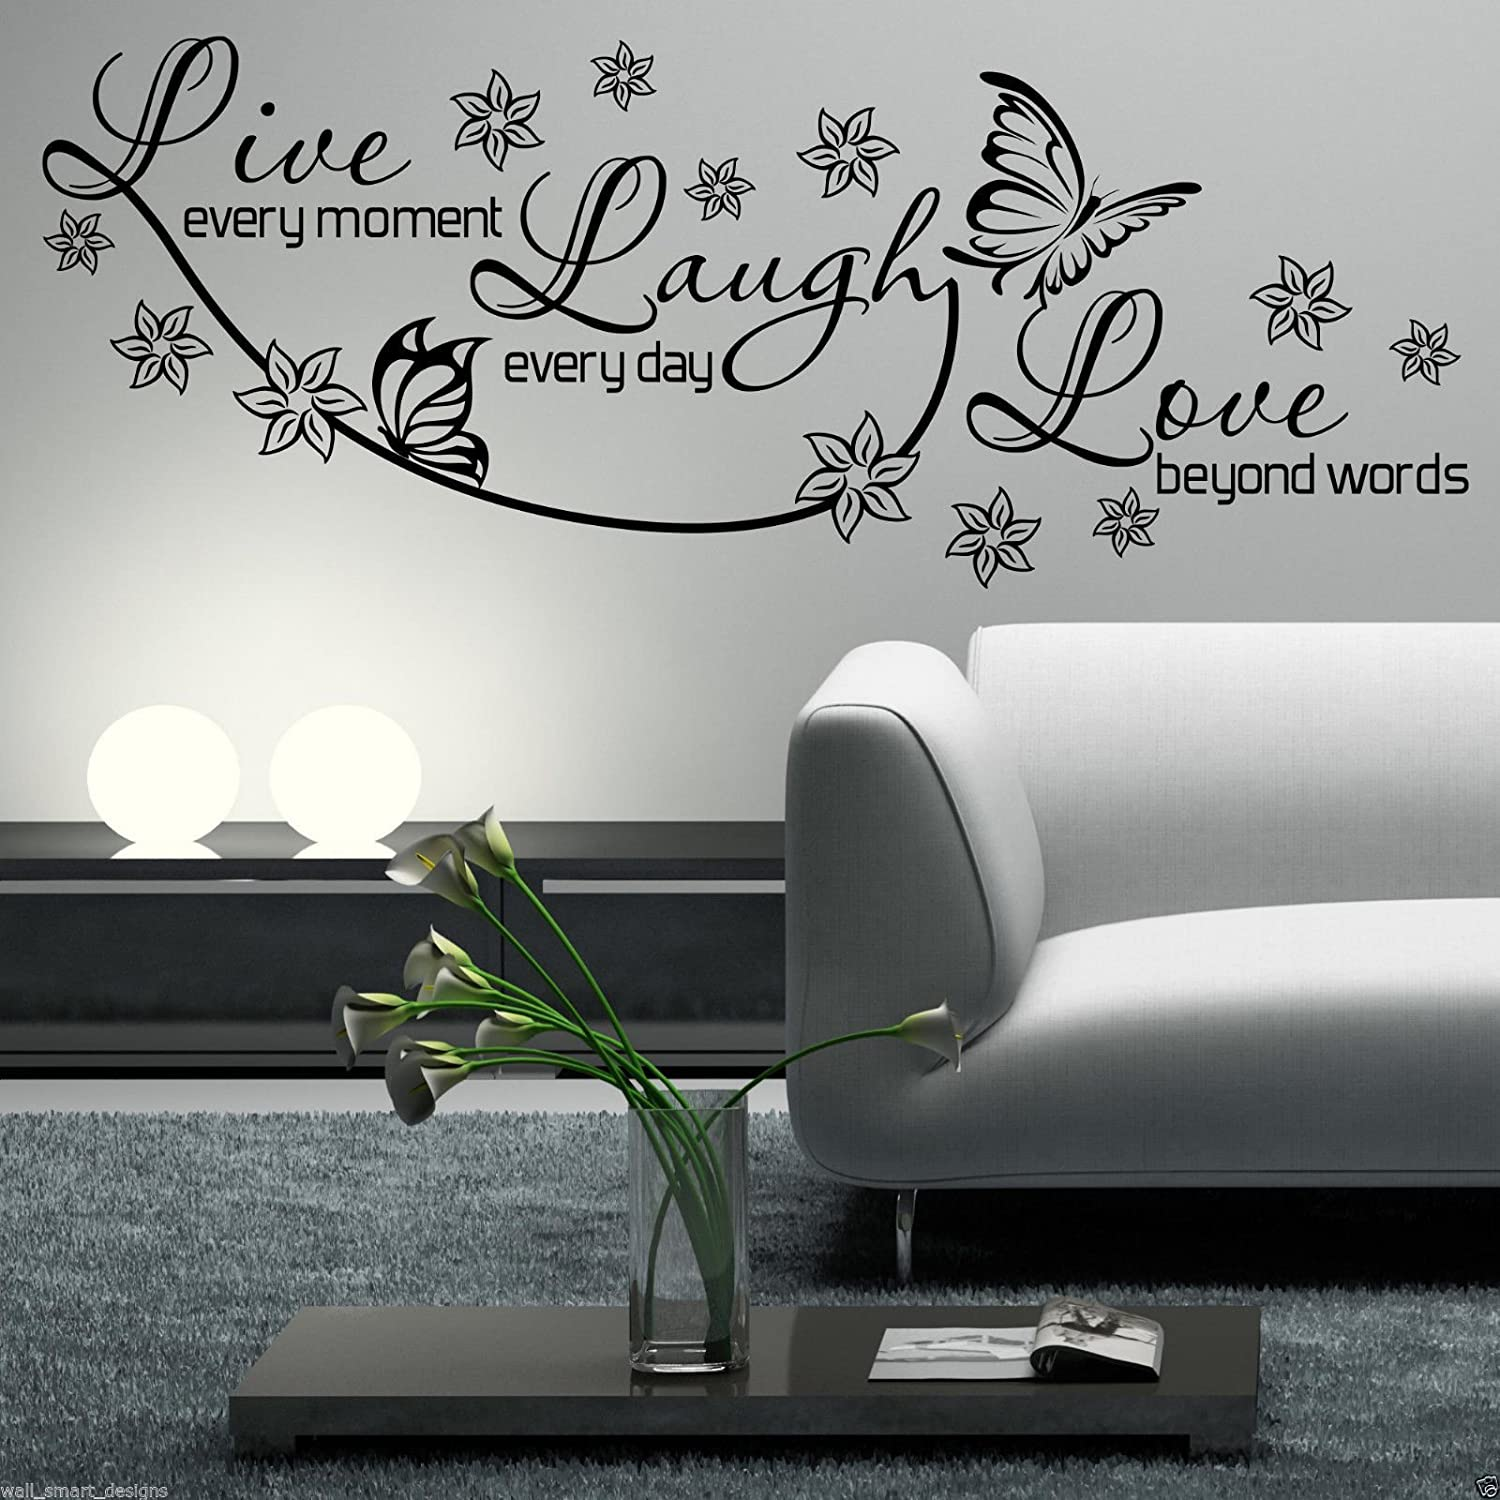 Live Laugh Love Wall Art Part - 20: Amazon.com: LIVE LAUGH LOVE Wall Art Sticker Lounge Room Quote Decal Mural  Stencil Transfer: Kitchen u0026 Dining